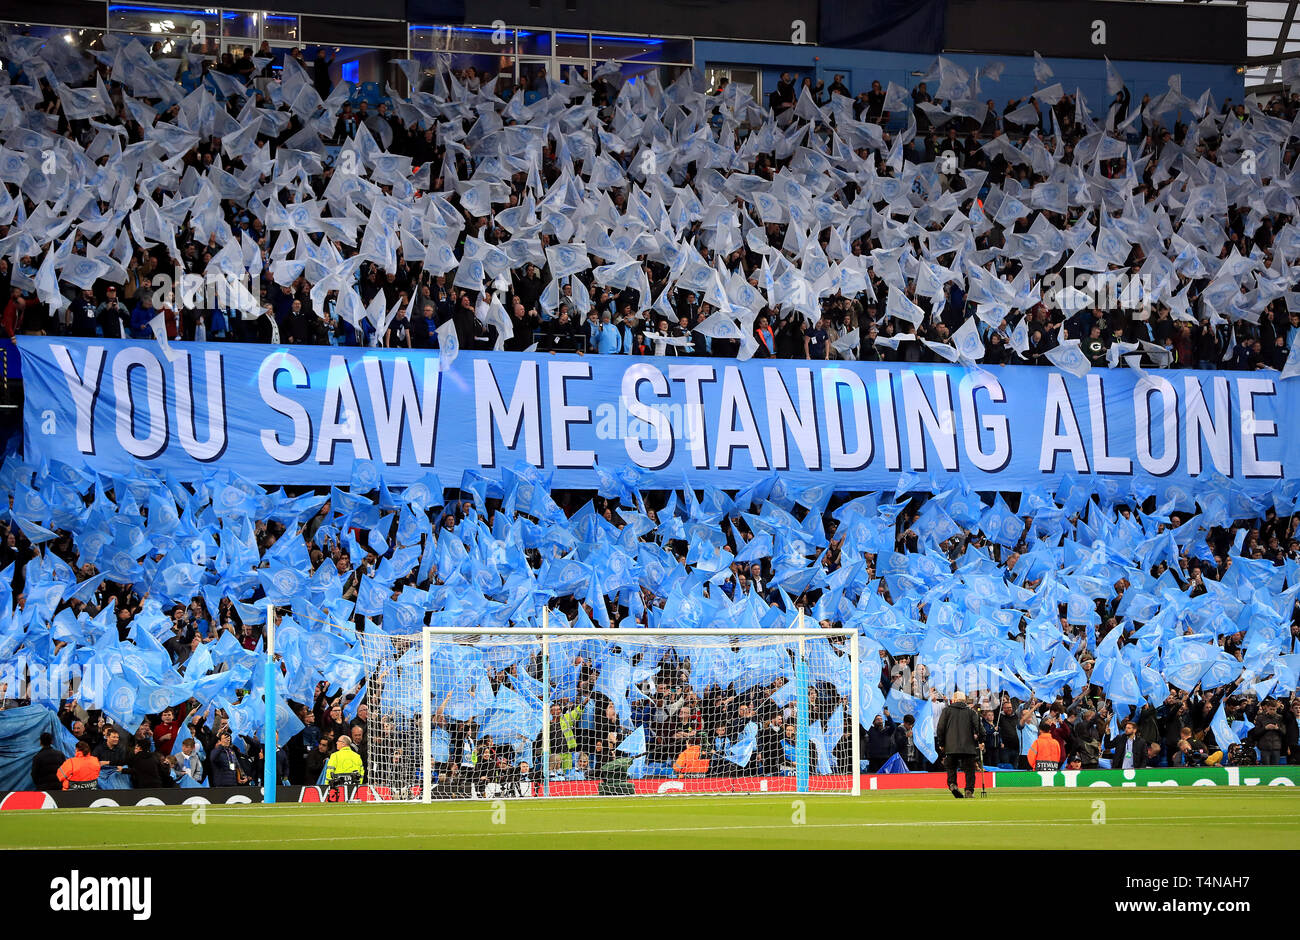 Manchester City fans wave flags ahead of kick-off near a